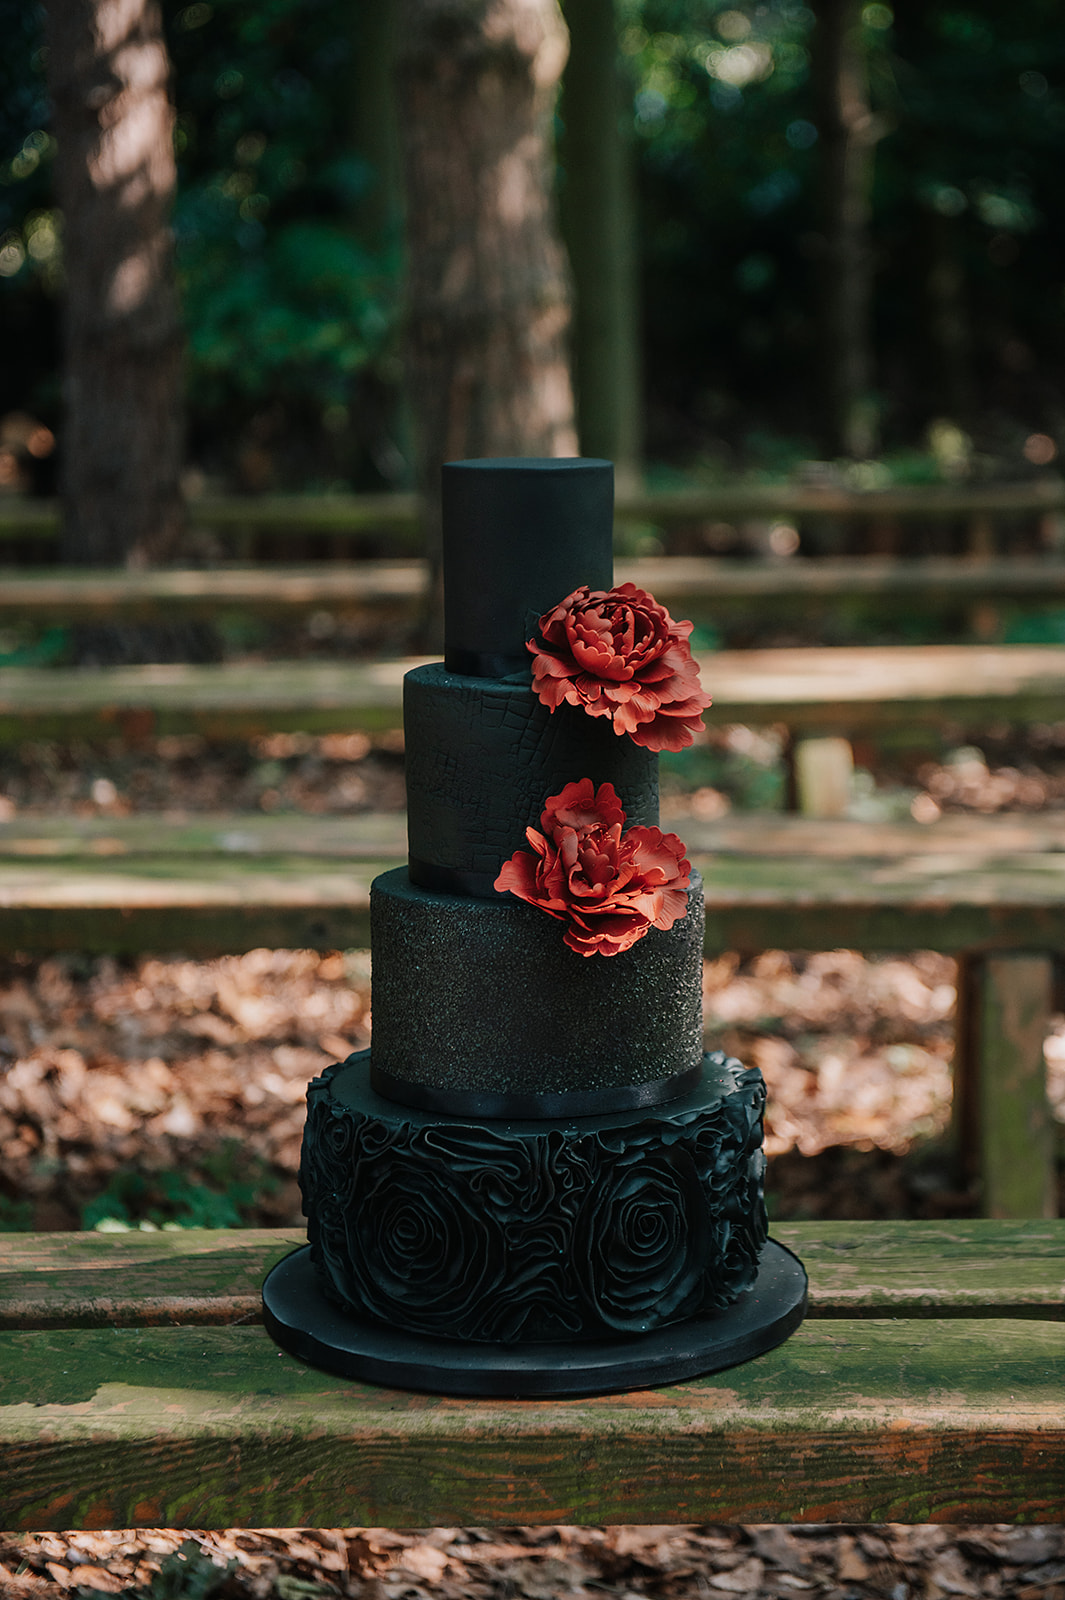 black wedding cake with red flowers - gothic wedding cake - unique wedding cake